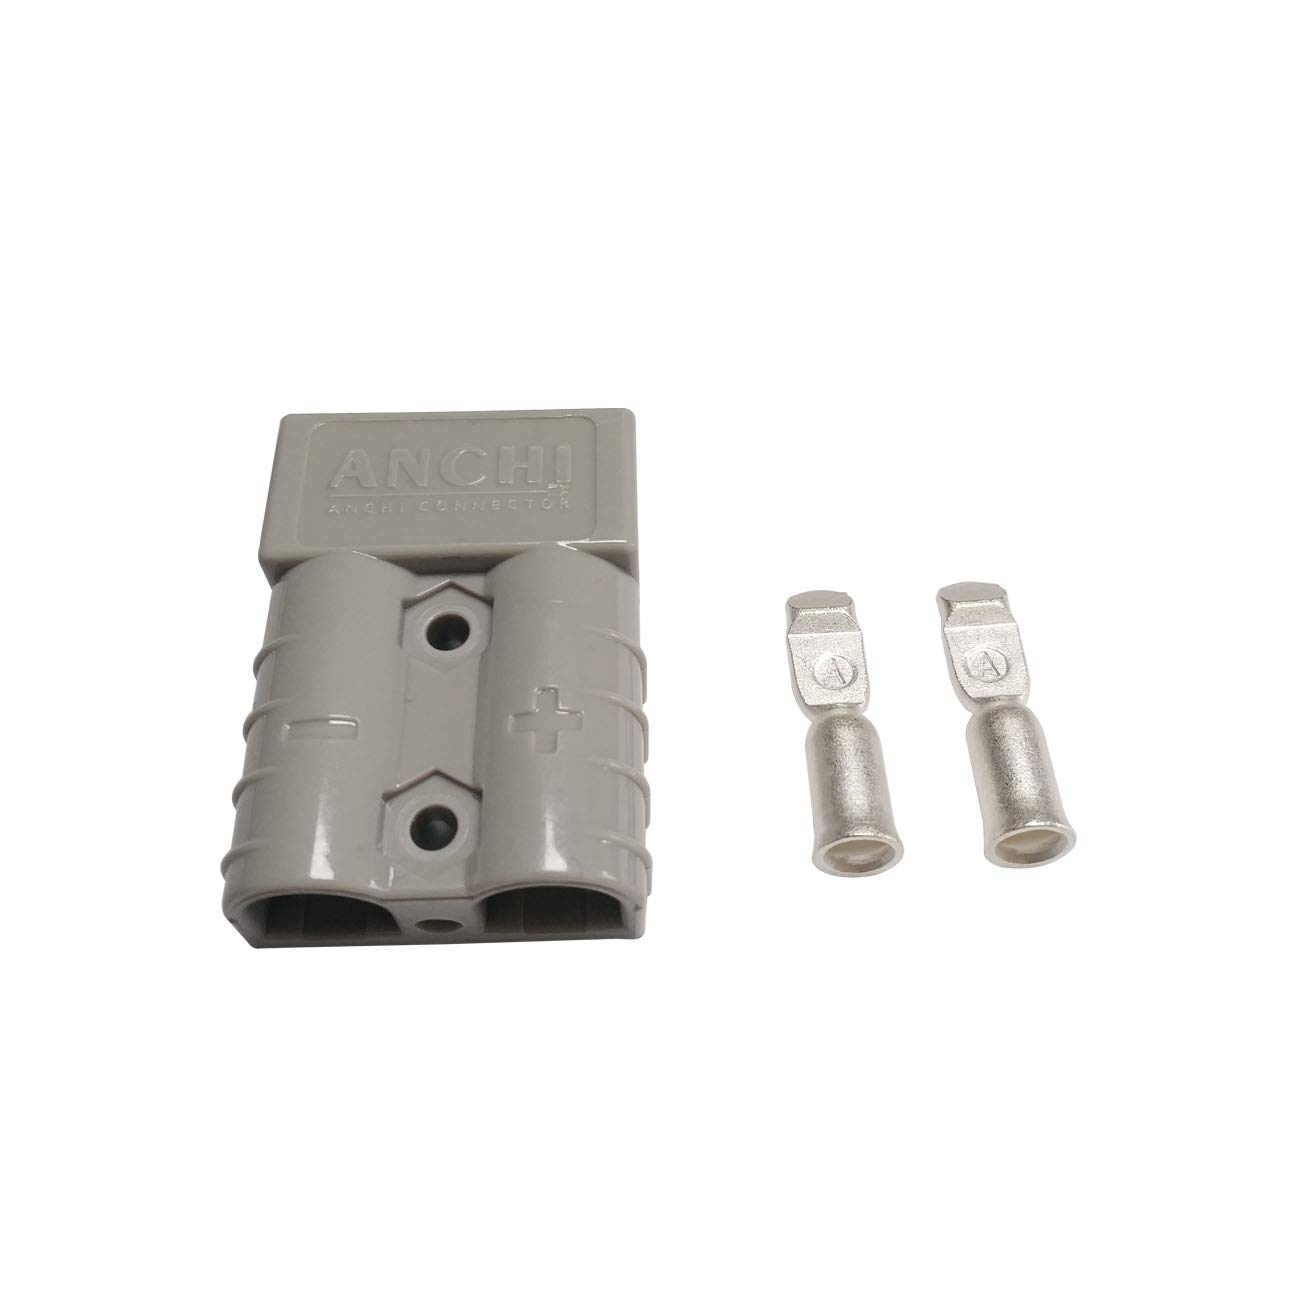 50Amp Power Connector Plug 50A Quick Connect Disconnect 600 V 10 Pairs Grey, 10//12awg for Anderson 50Amp 20pcs